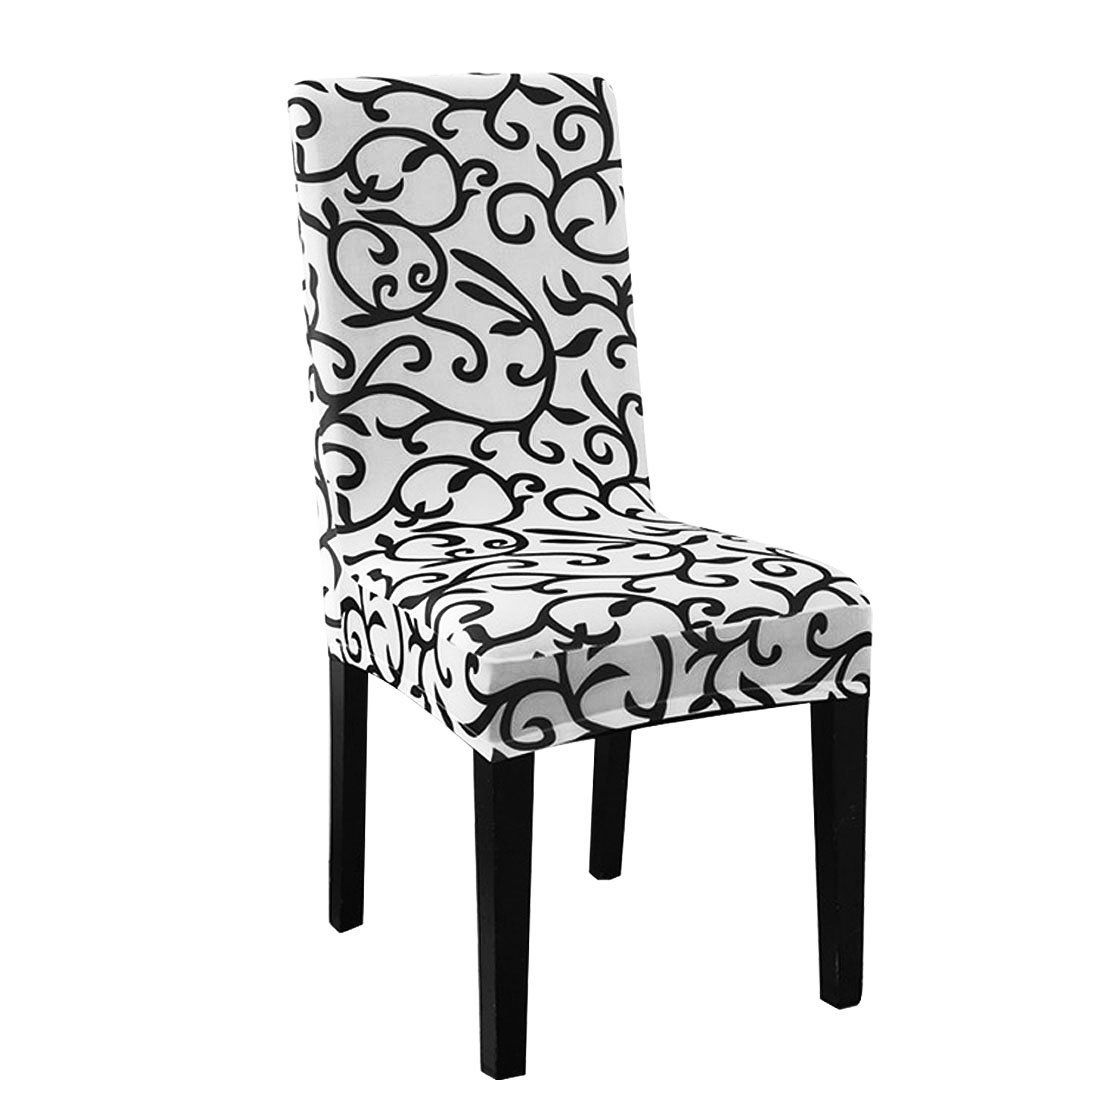 Table & Sofa Linens Steady Stretchy Dining Chair Cover Short Chair Covers Washable Protector Seat Slipcover For Wedding Party Restaurant Banquet Home Dec